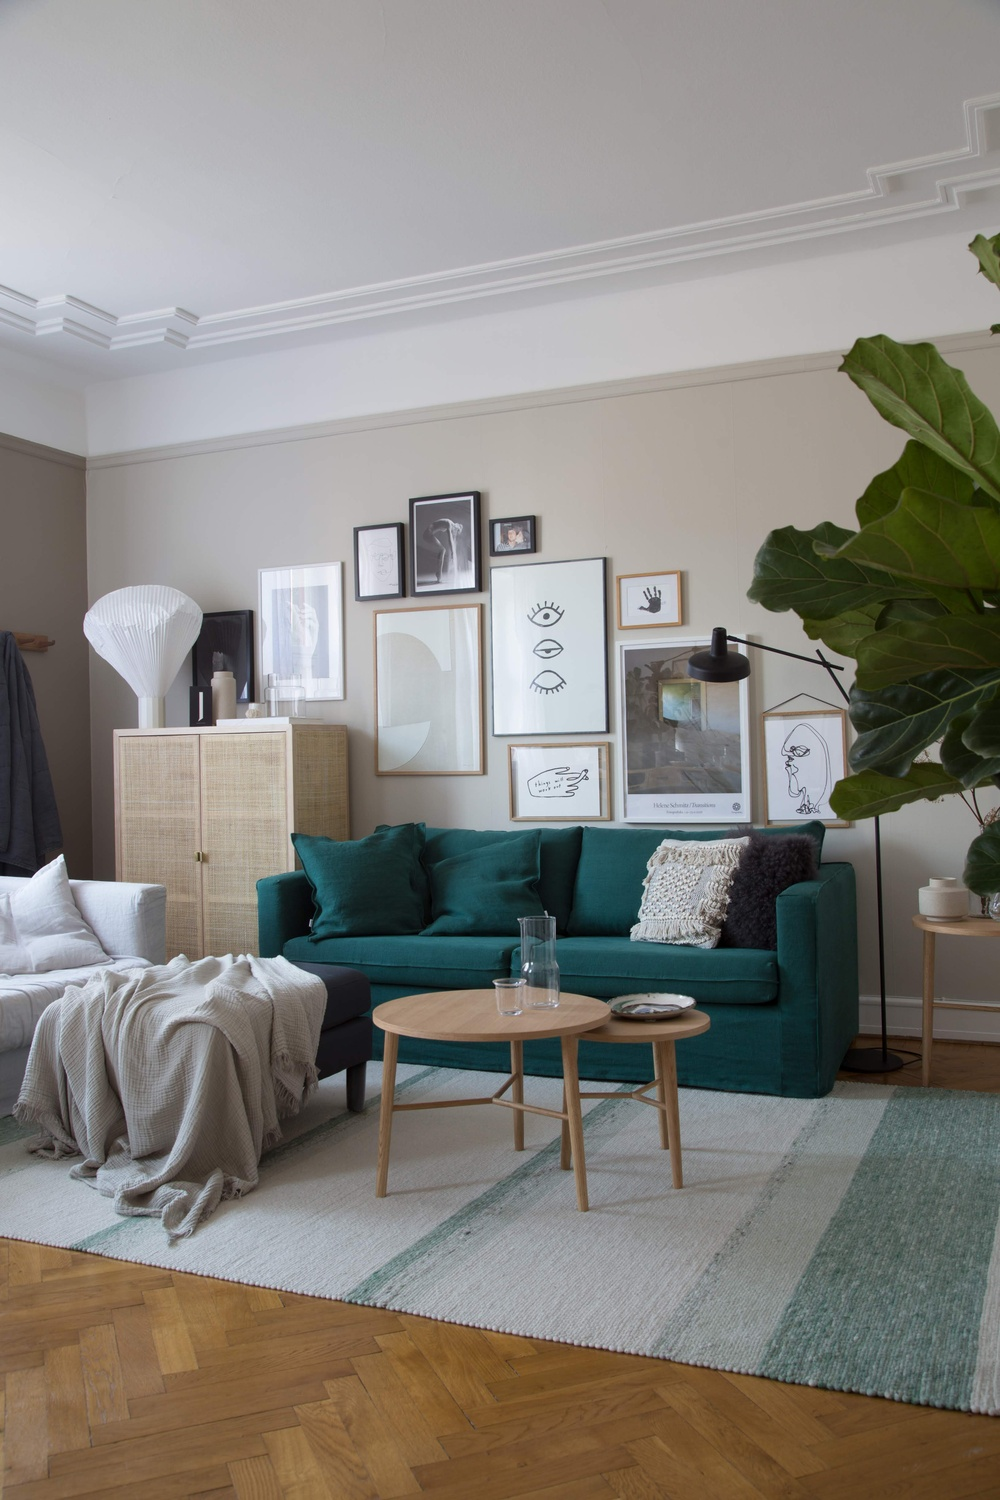 Bemz cover for Karlstad 3-seater, Loose Fit Urban and Karlstad footstool,  Fabric: Ivy Brera Lino fron Designers Guild + footstool in Graphite Simply Linen Bemz Cushion covers: Ivy Brera Lino from Designers Guild Stylist: Genevieve Jorn Photographer: Niki Brantmark / My Scandinavian Home